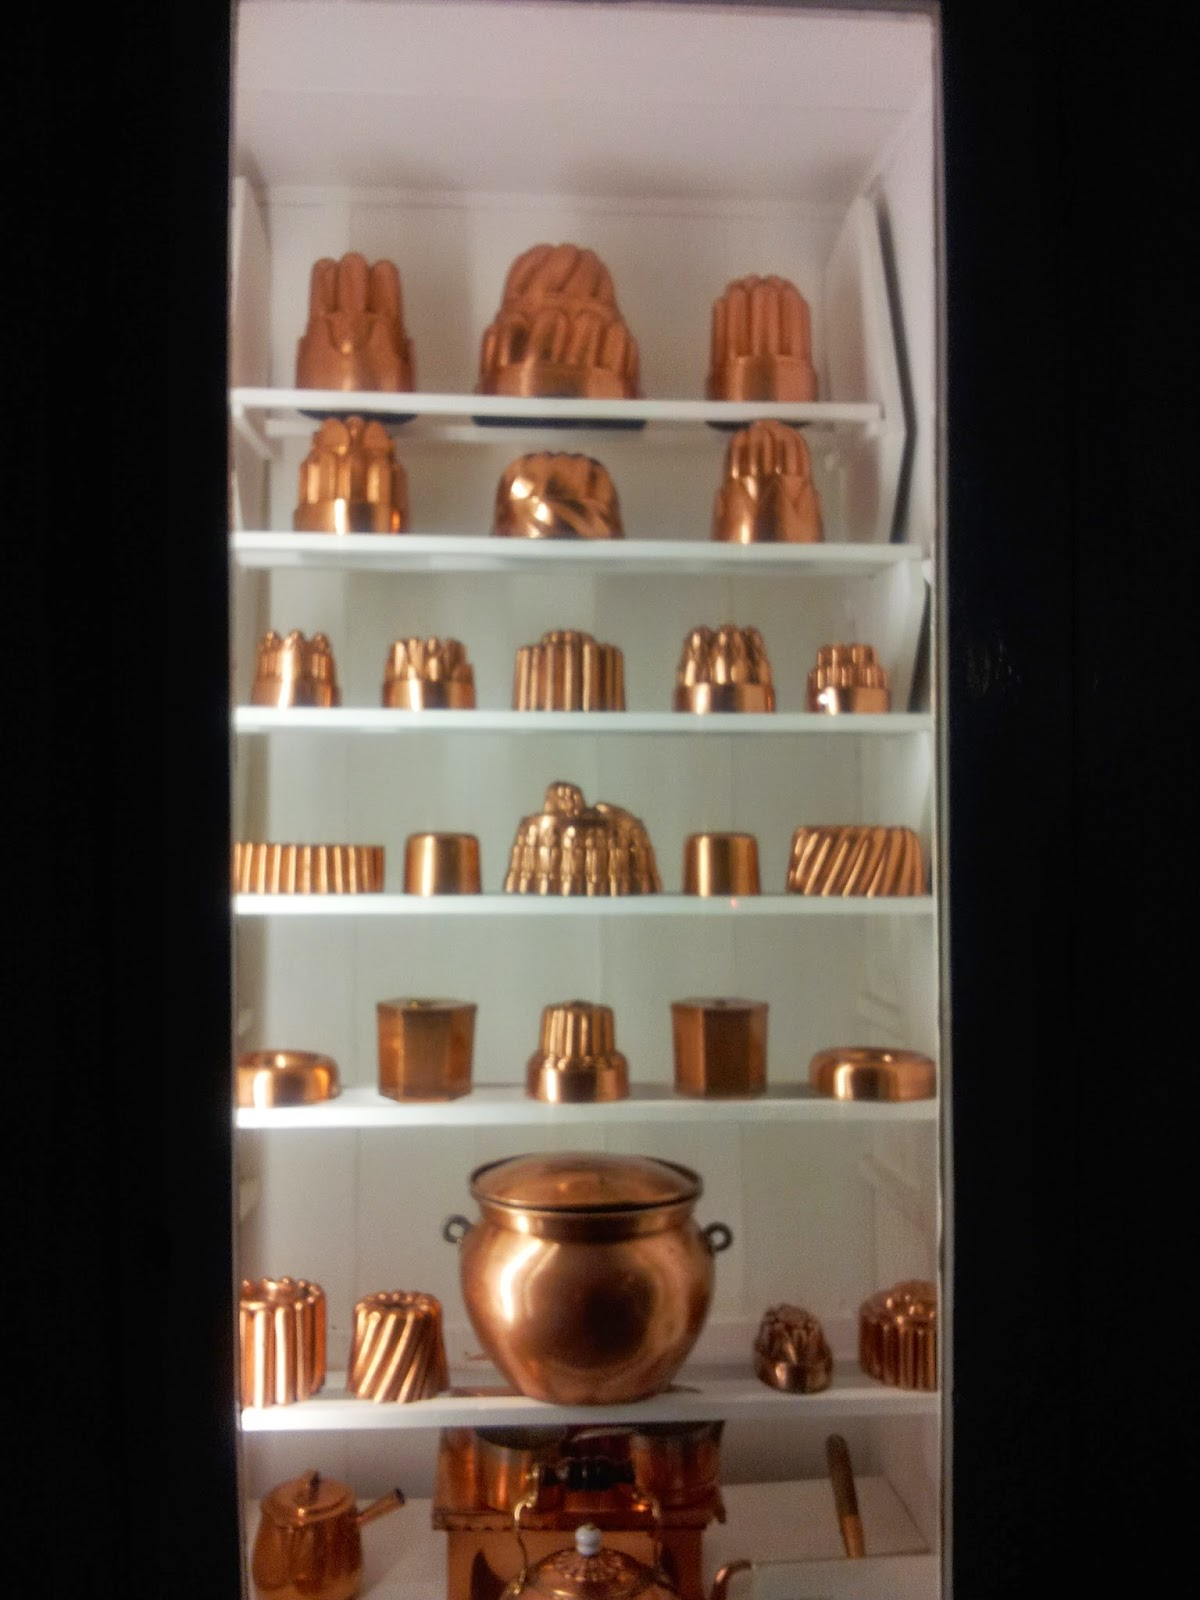 Jelly moulds in the kitchen of Inverary castle, Scotland